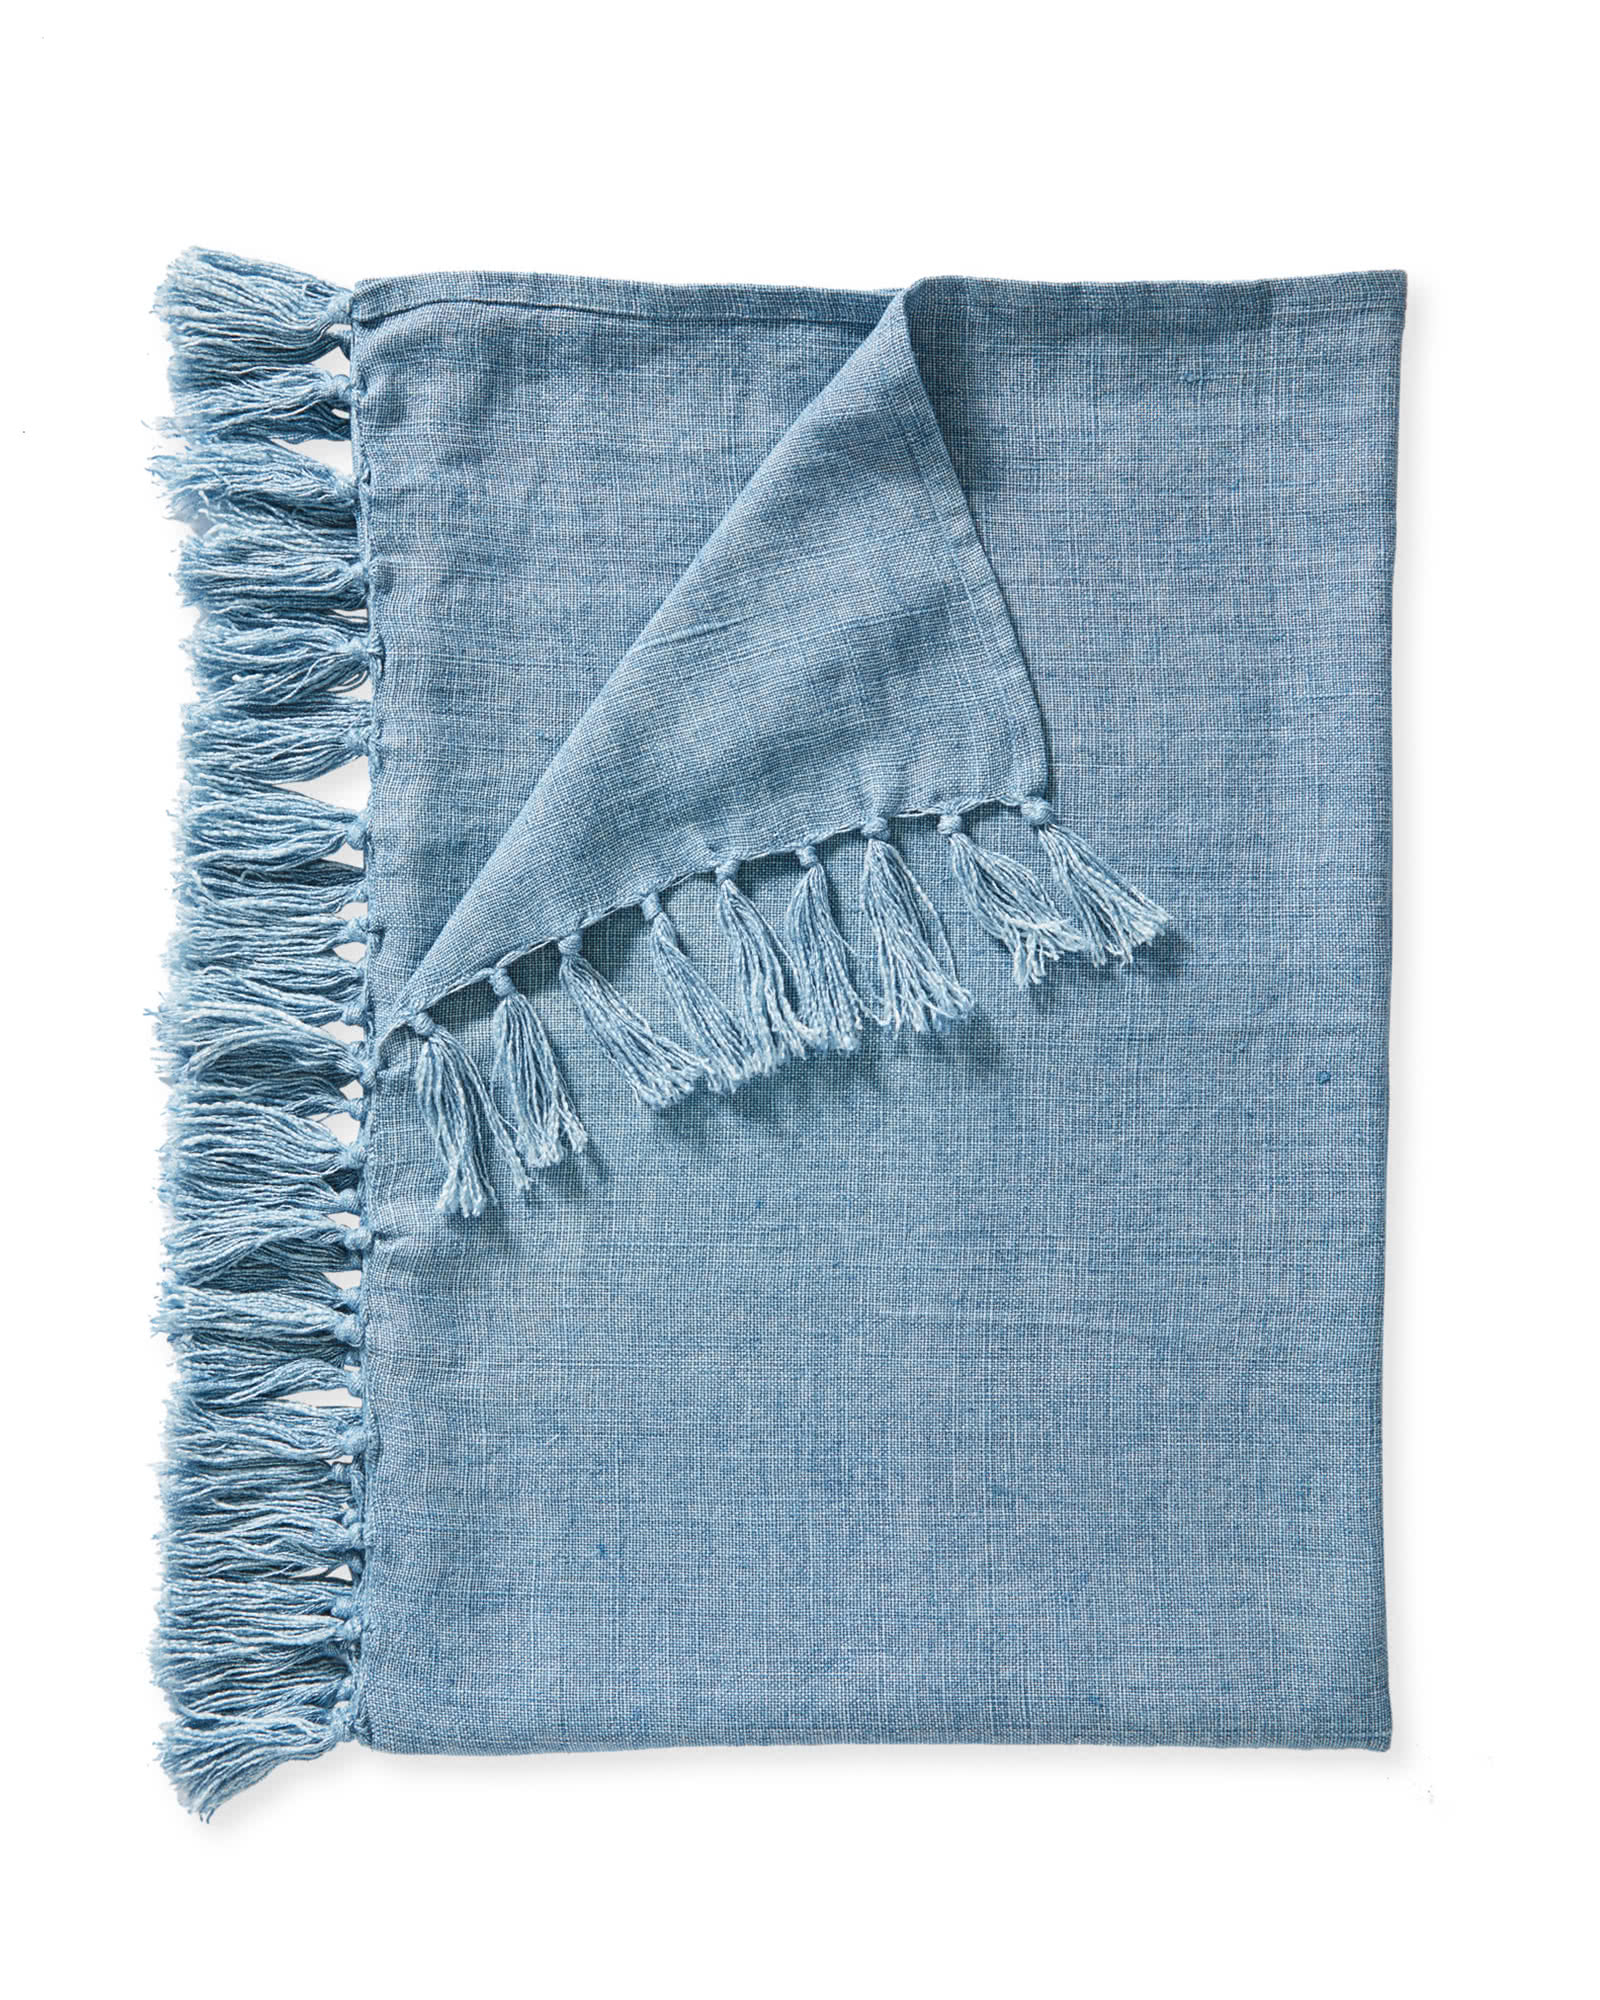 Mendocino Linen Throw, Coastal Blue